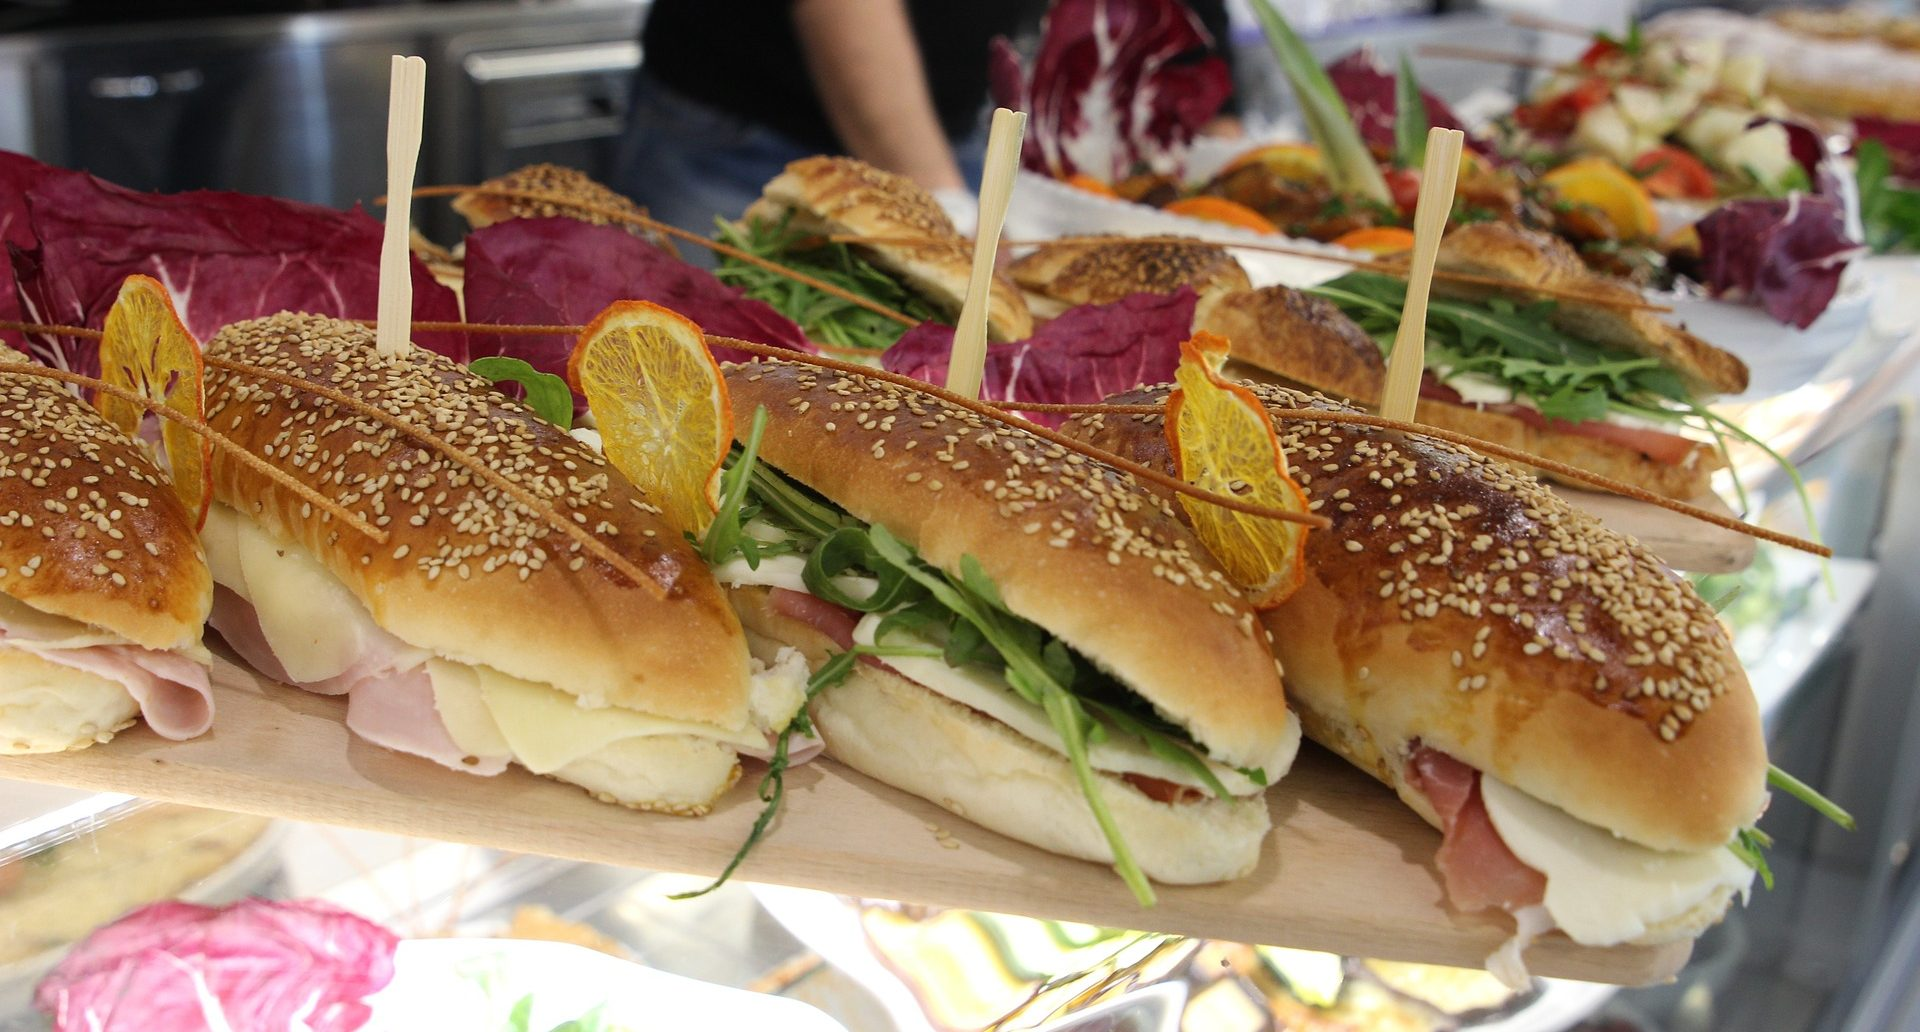 Row of sandwiches at a deli.